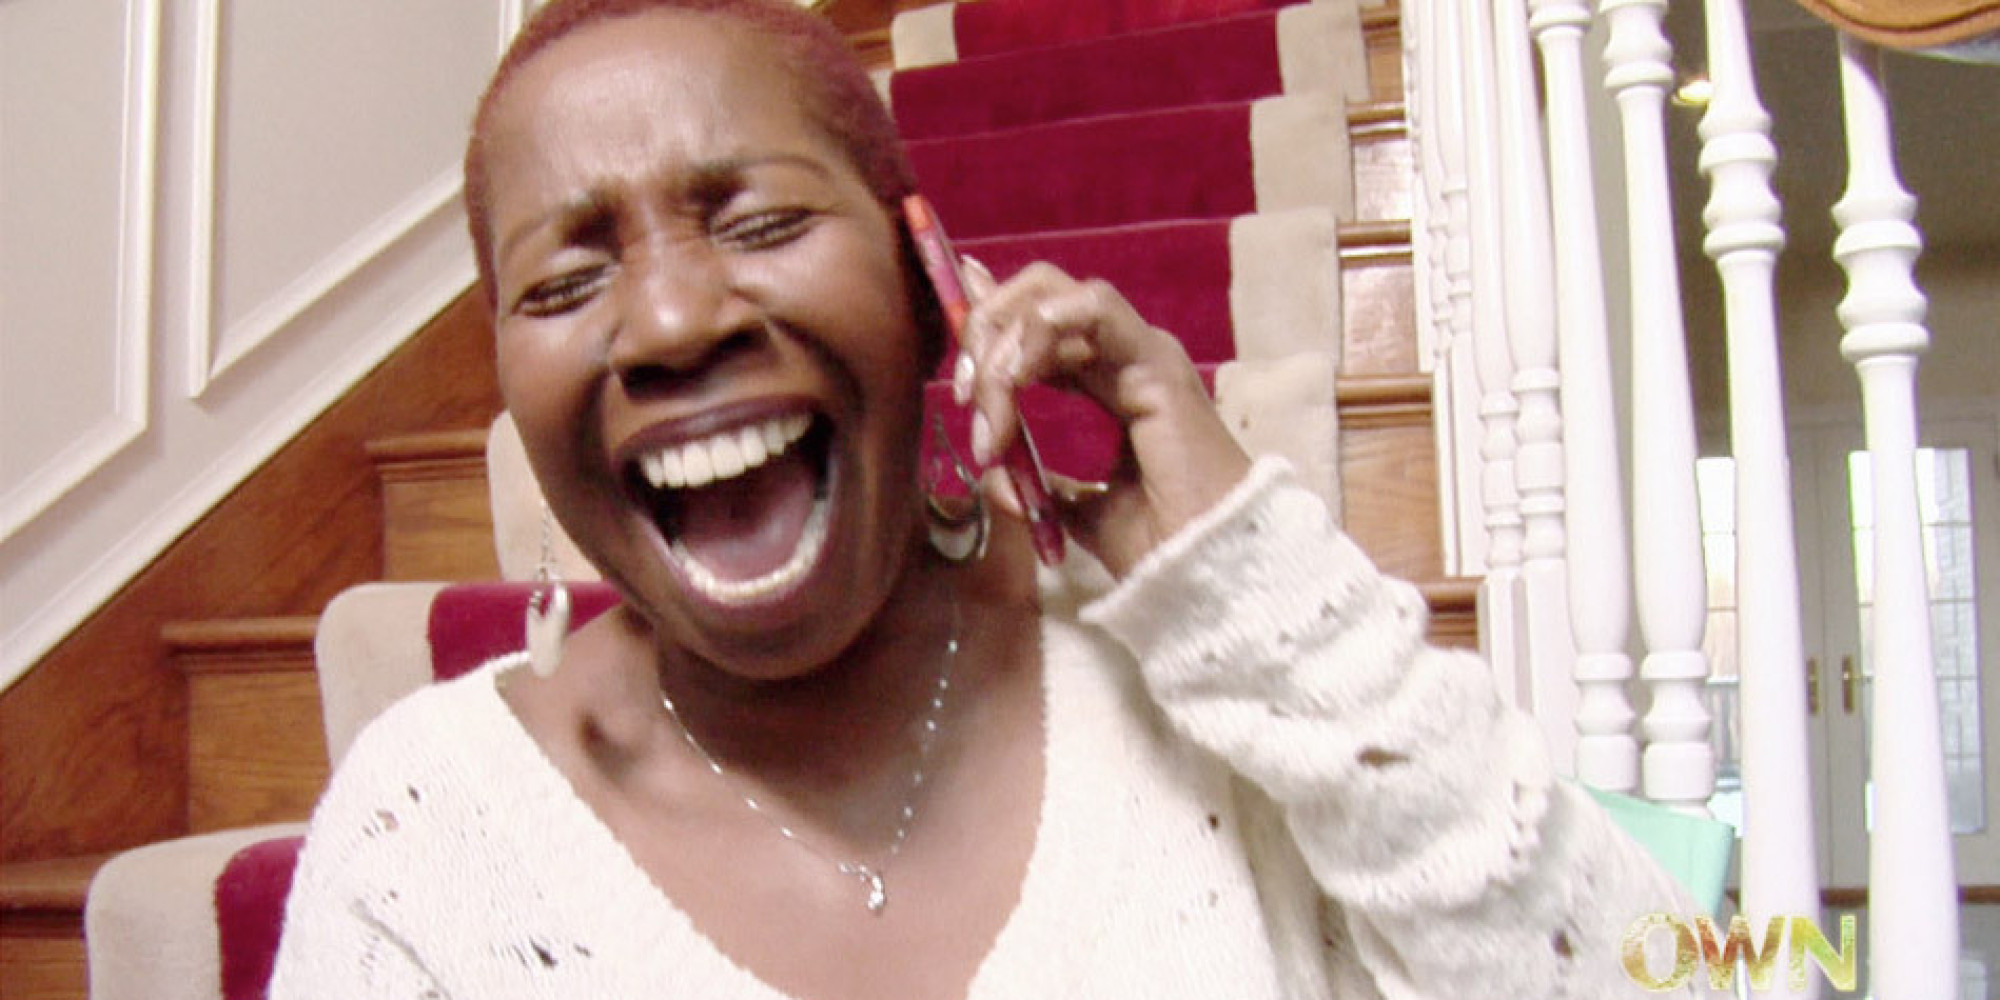 Iyanla vanzant interview